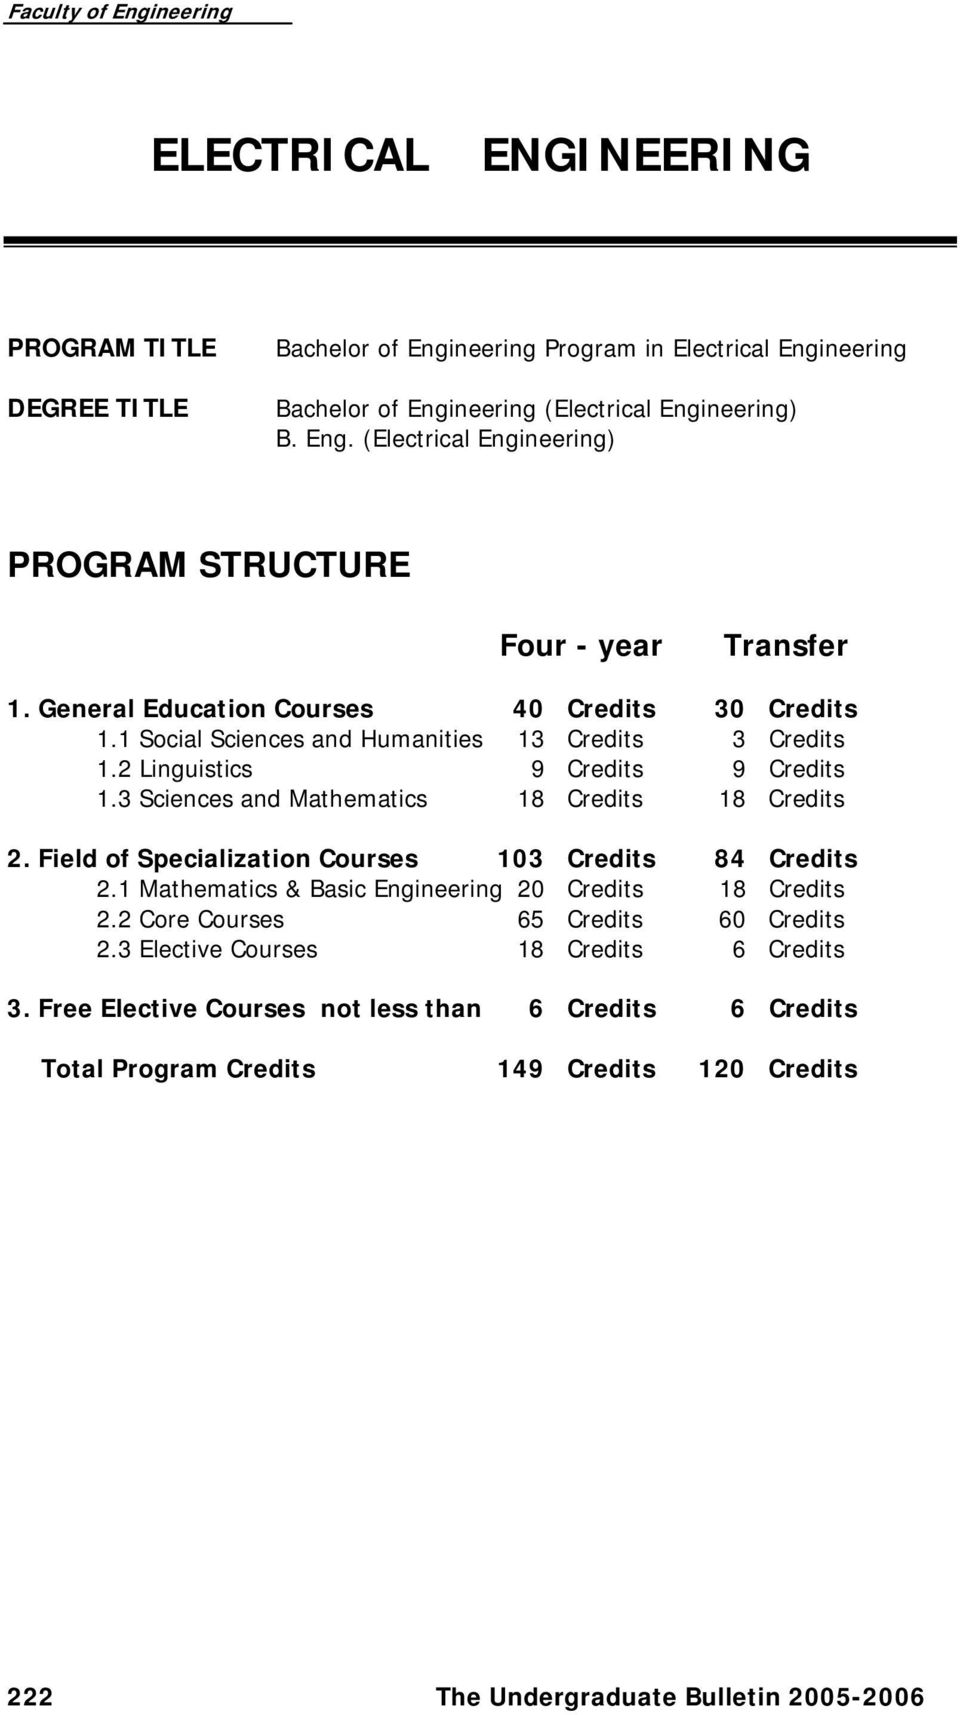 Electrical Engineering Pdf